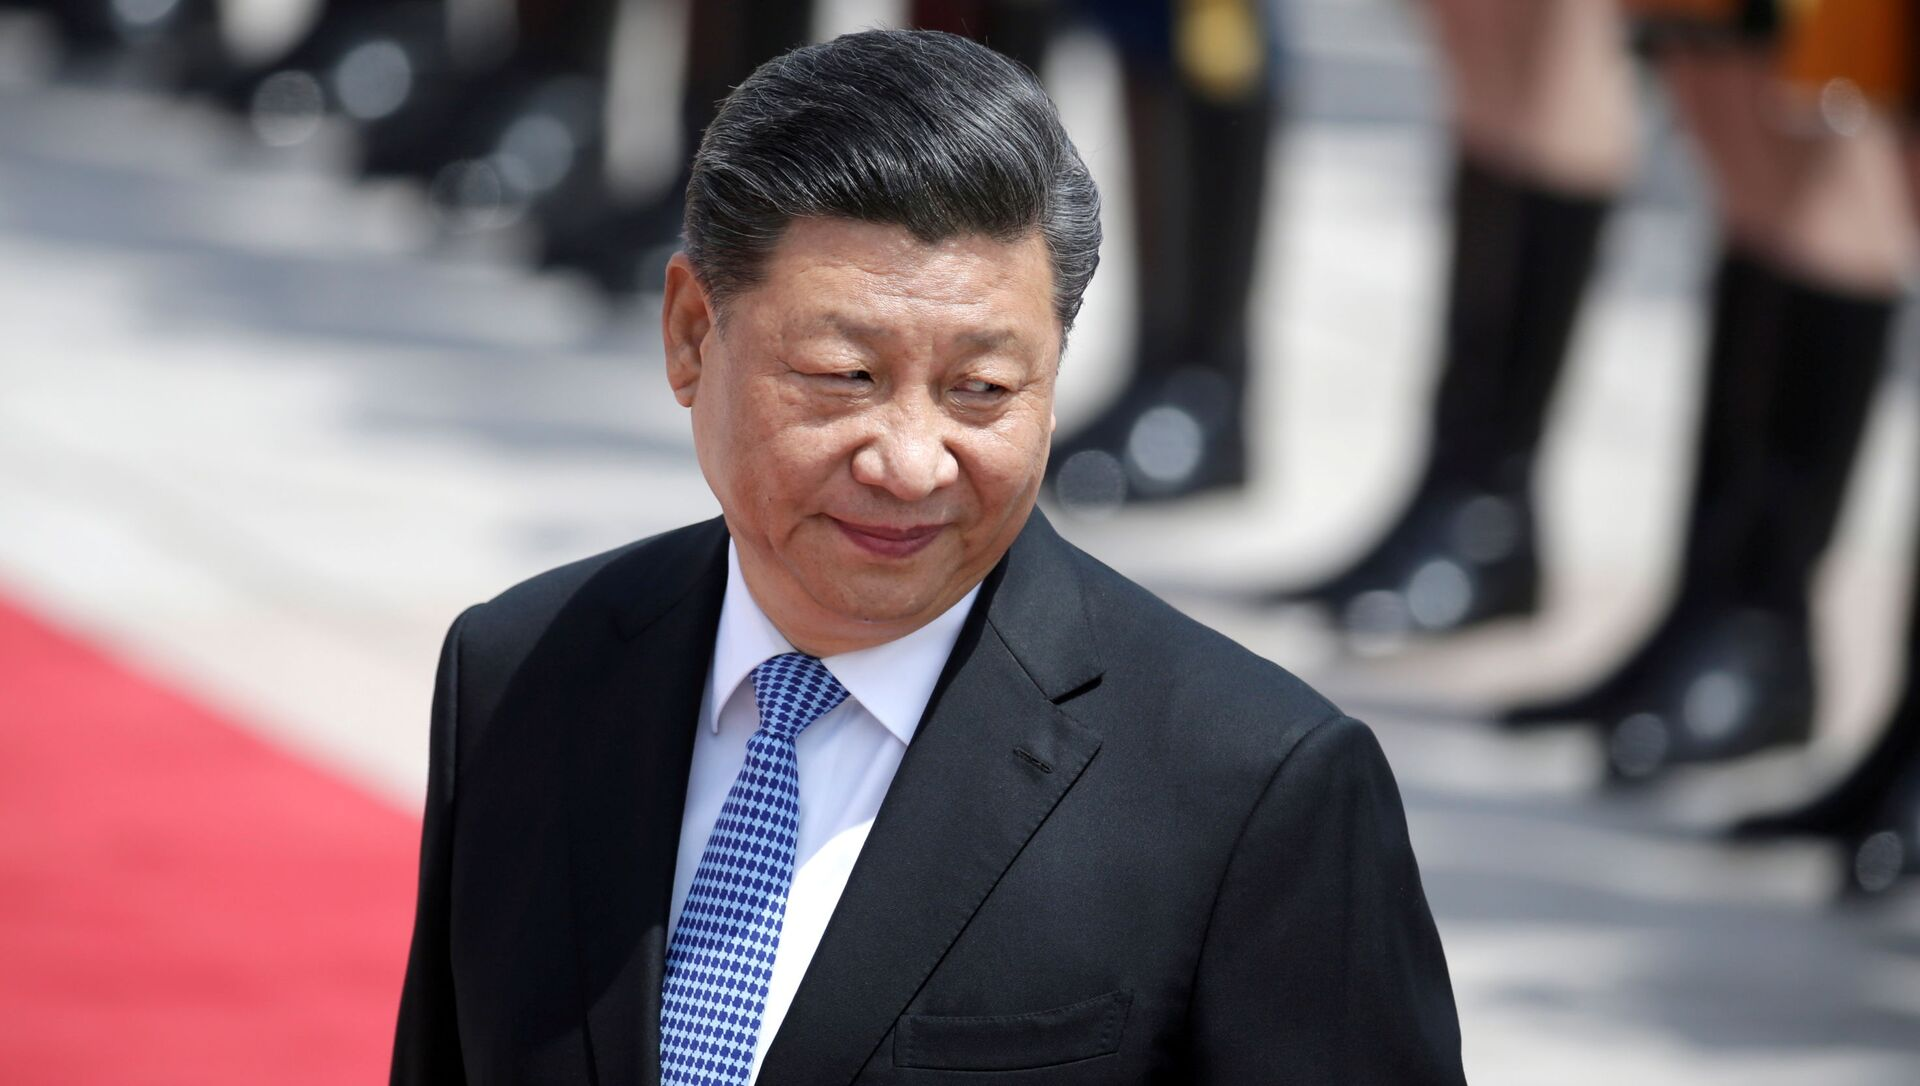 Chinese President Xi Jinping attends a welcoming ceremony for Greek President Prokopis Pavlopoulos outside the Great Hall of the People, in Beijing, China May 14, 2019 - Sputnik International, 1920, 23.07.2021